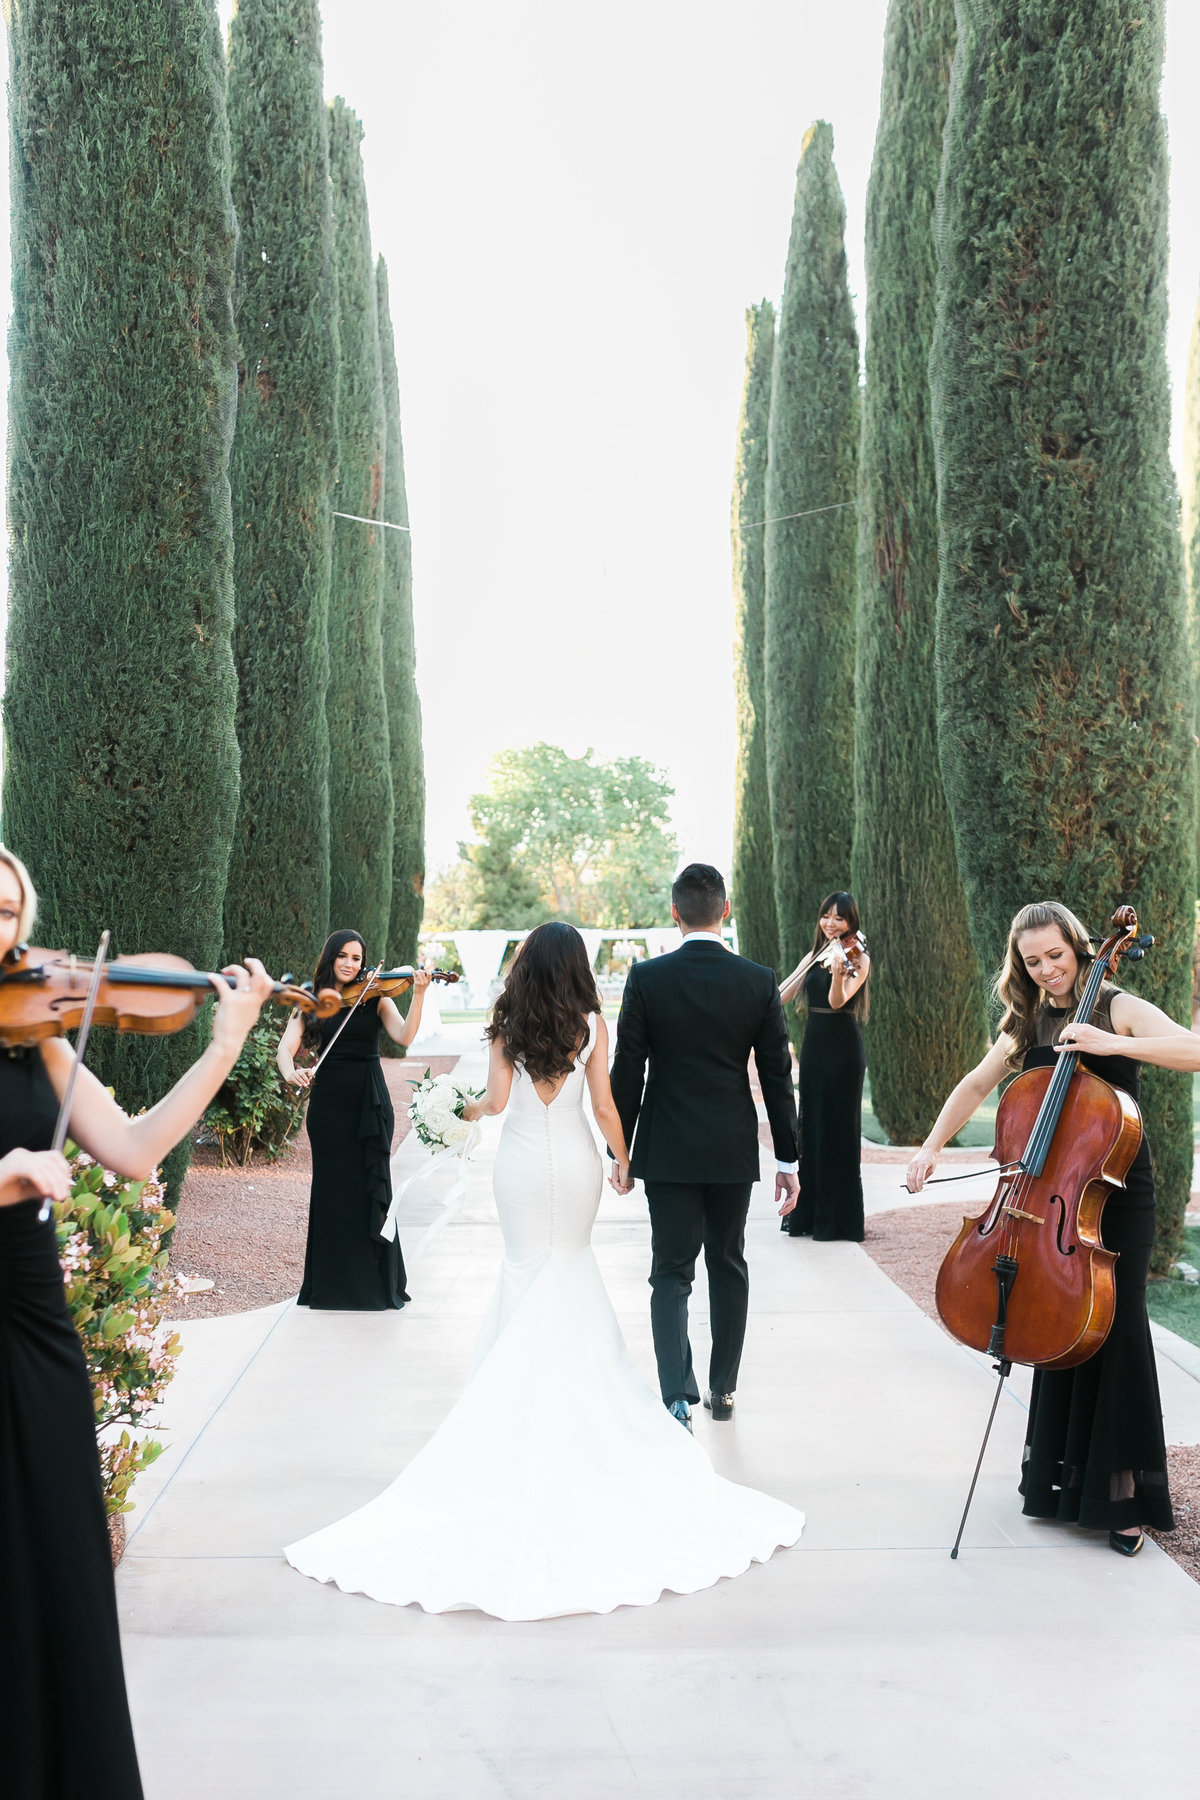 a photo of a bride and groom walking down a walkway lined with tall topiaries and a string quartet is lined serenading the couple for their wedding at Green Valley Ranch Resort and Spa in Las Vegas